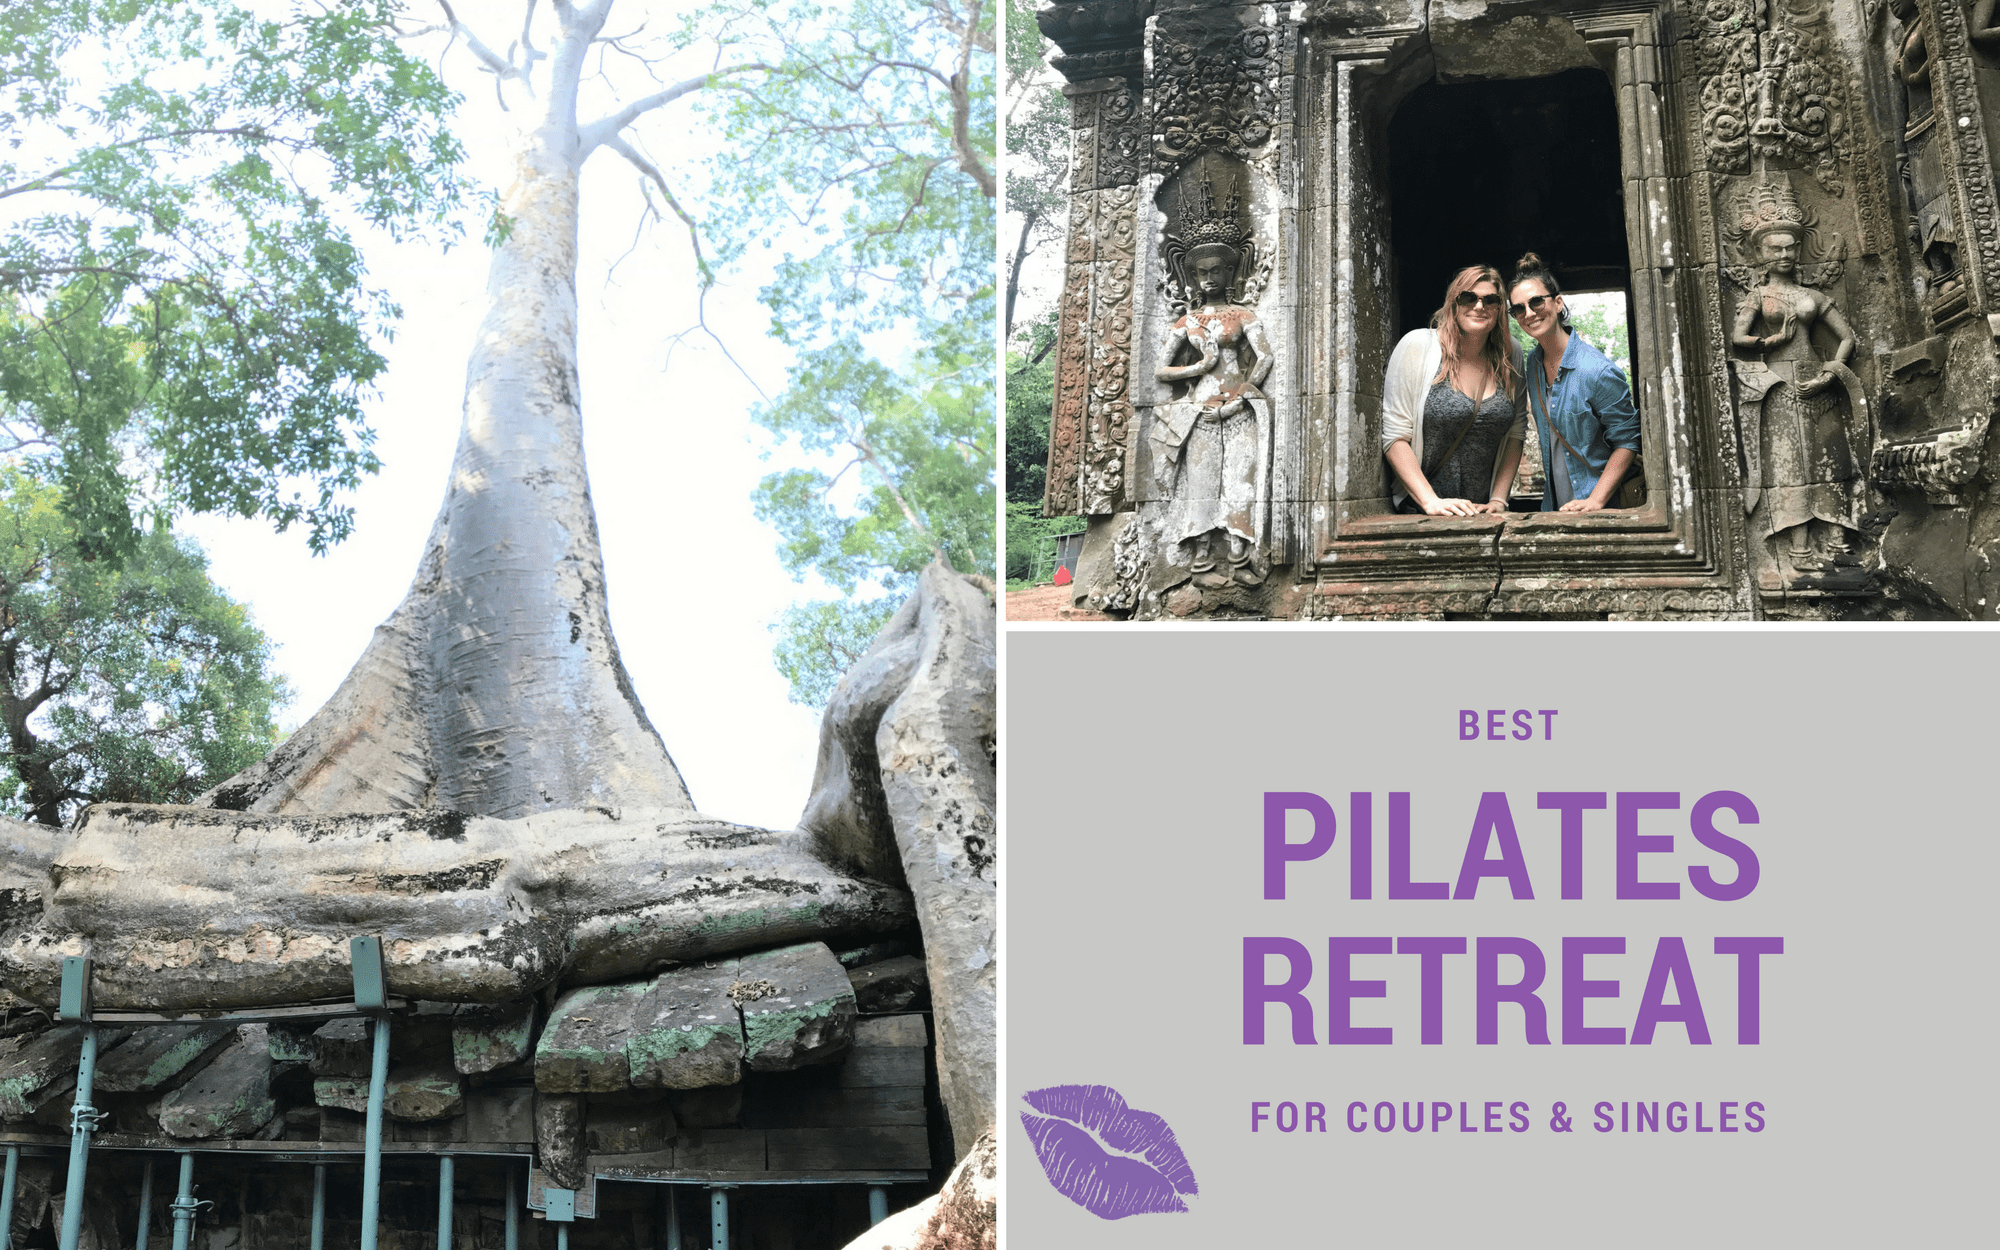 best-pilates-retreat-abroad-singles-couples-2018